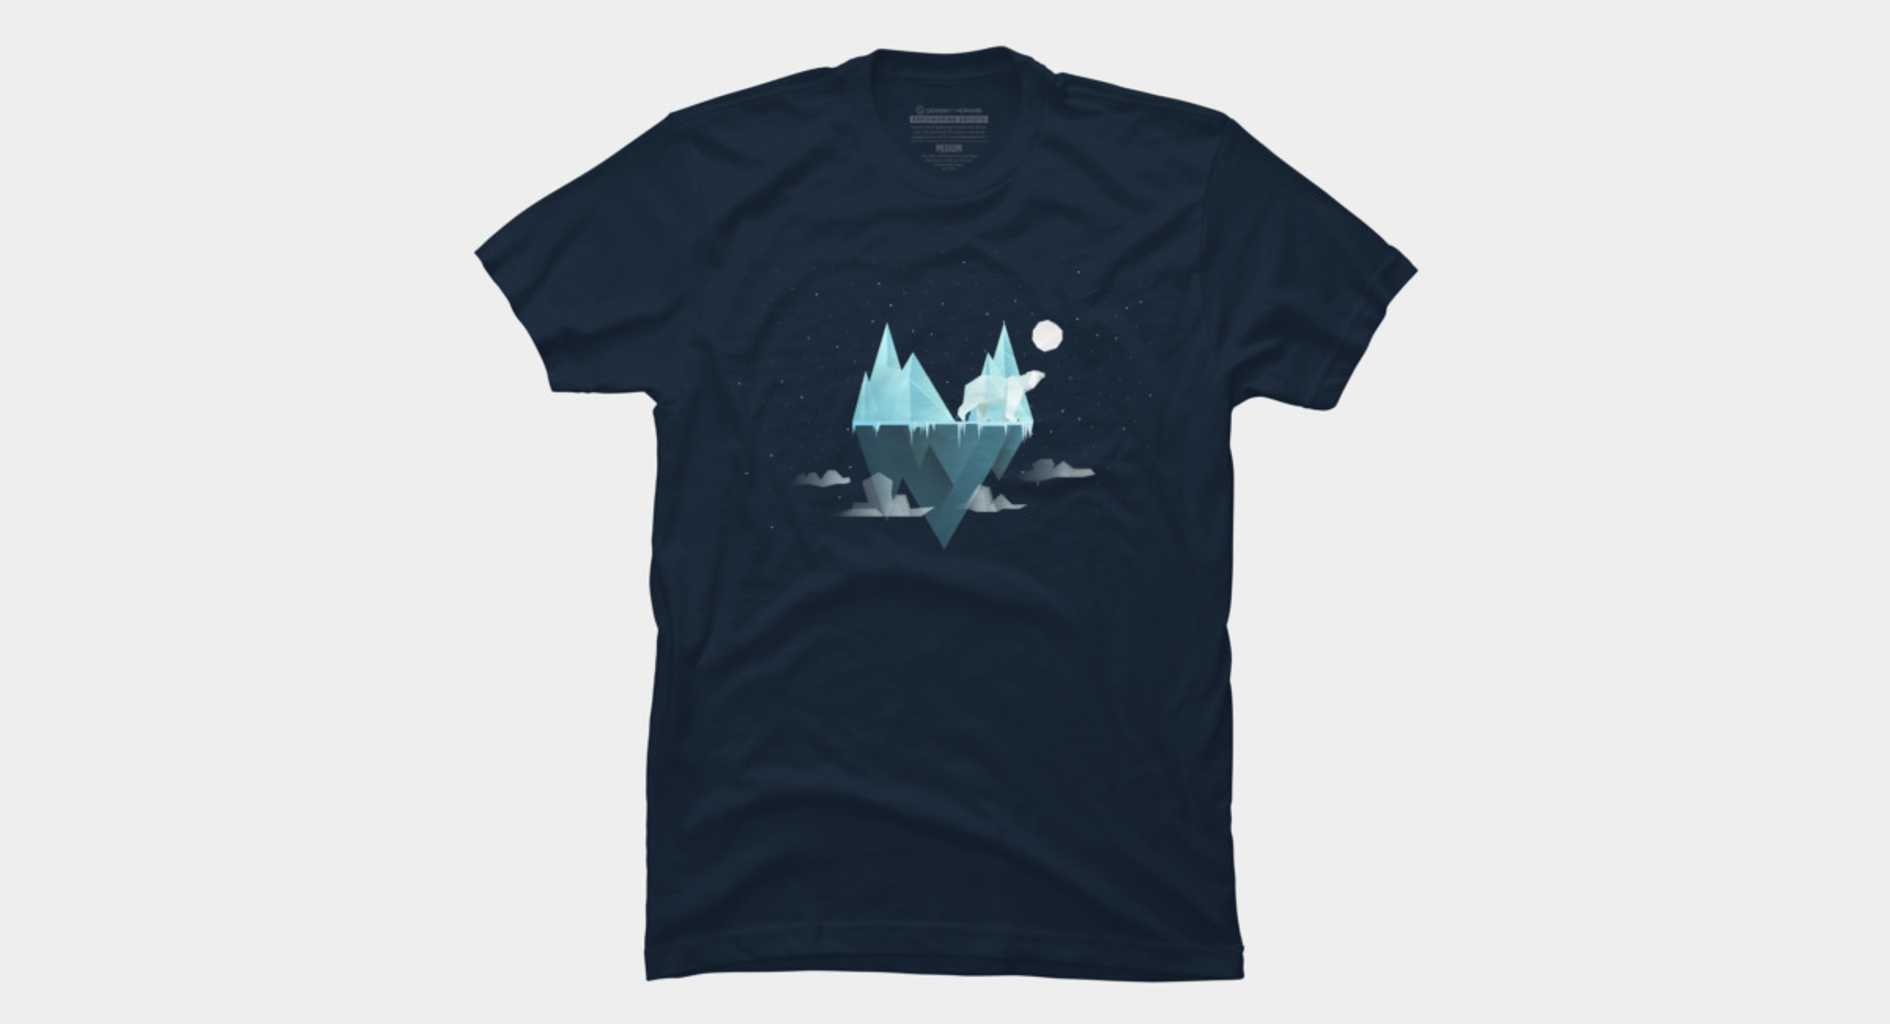 Design by Humans: Low Poly Polar Bear